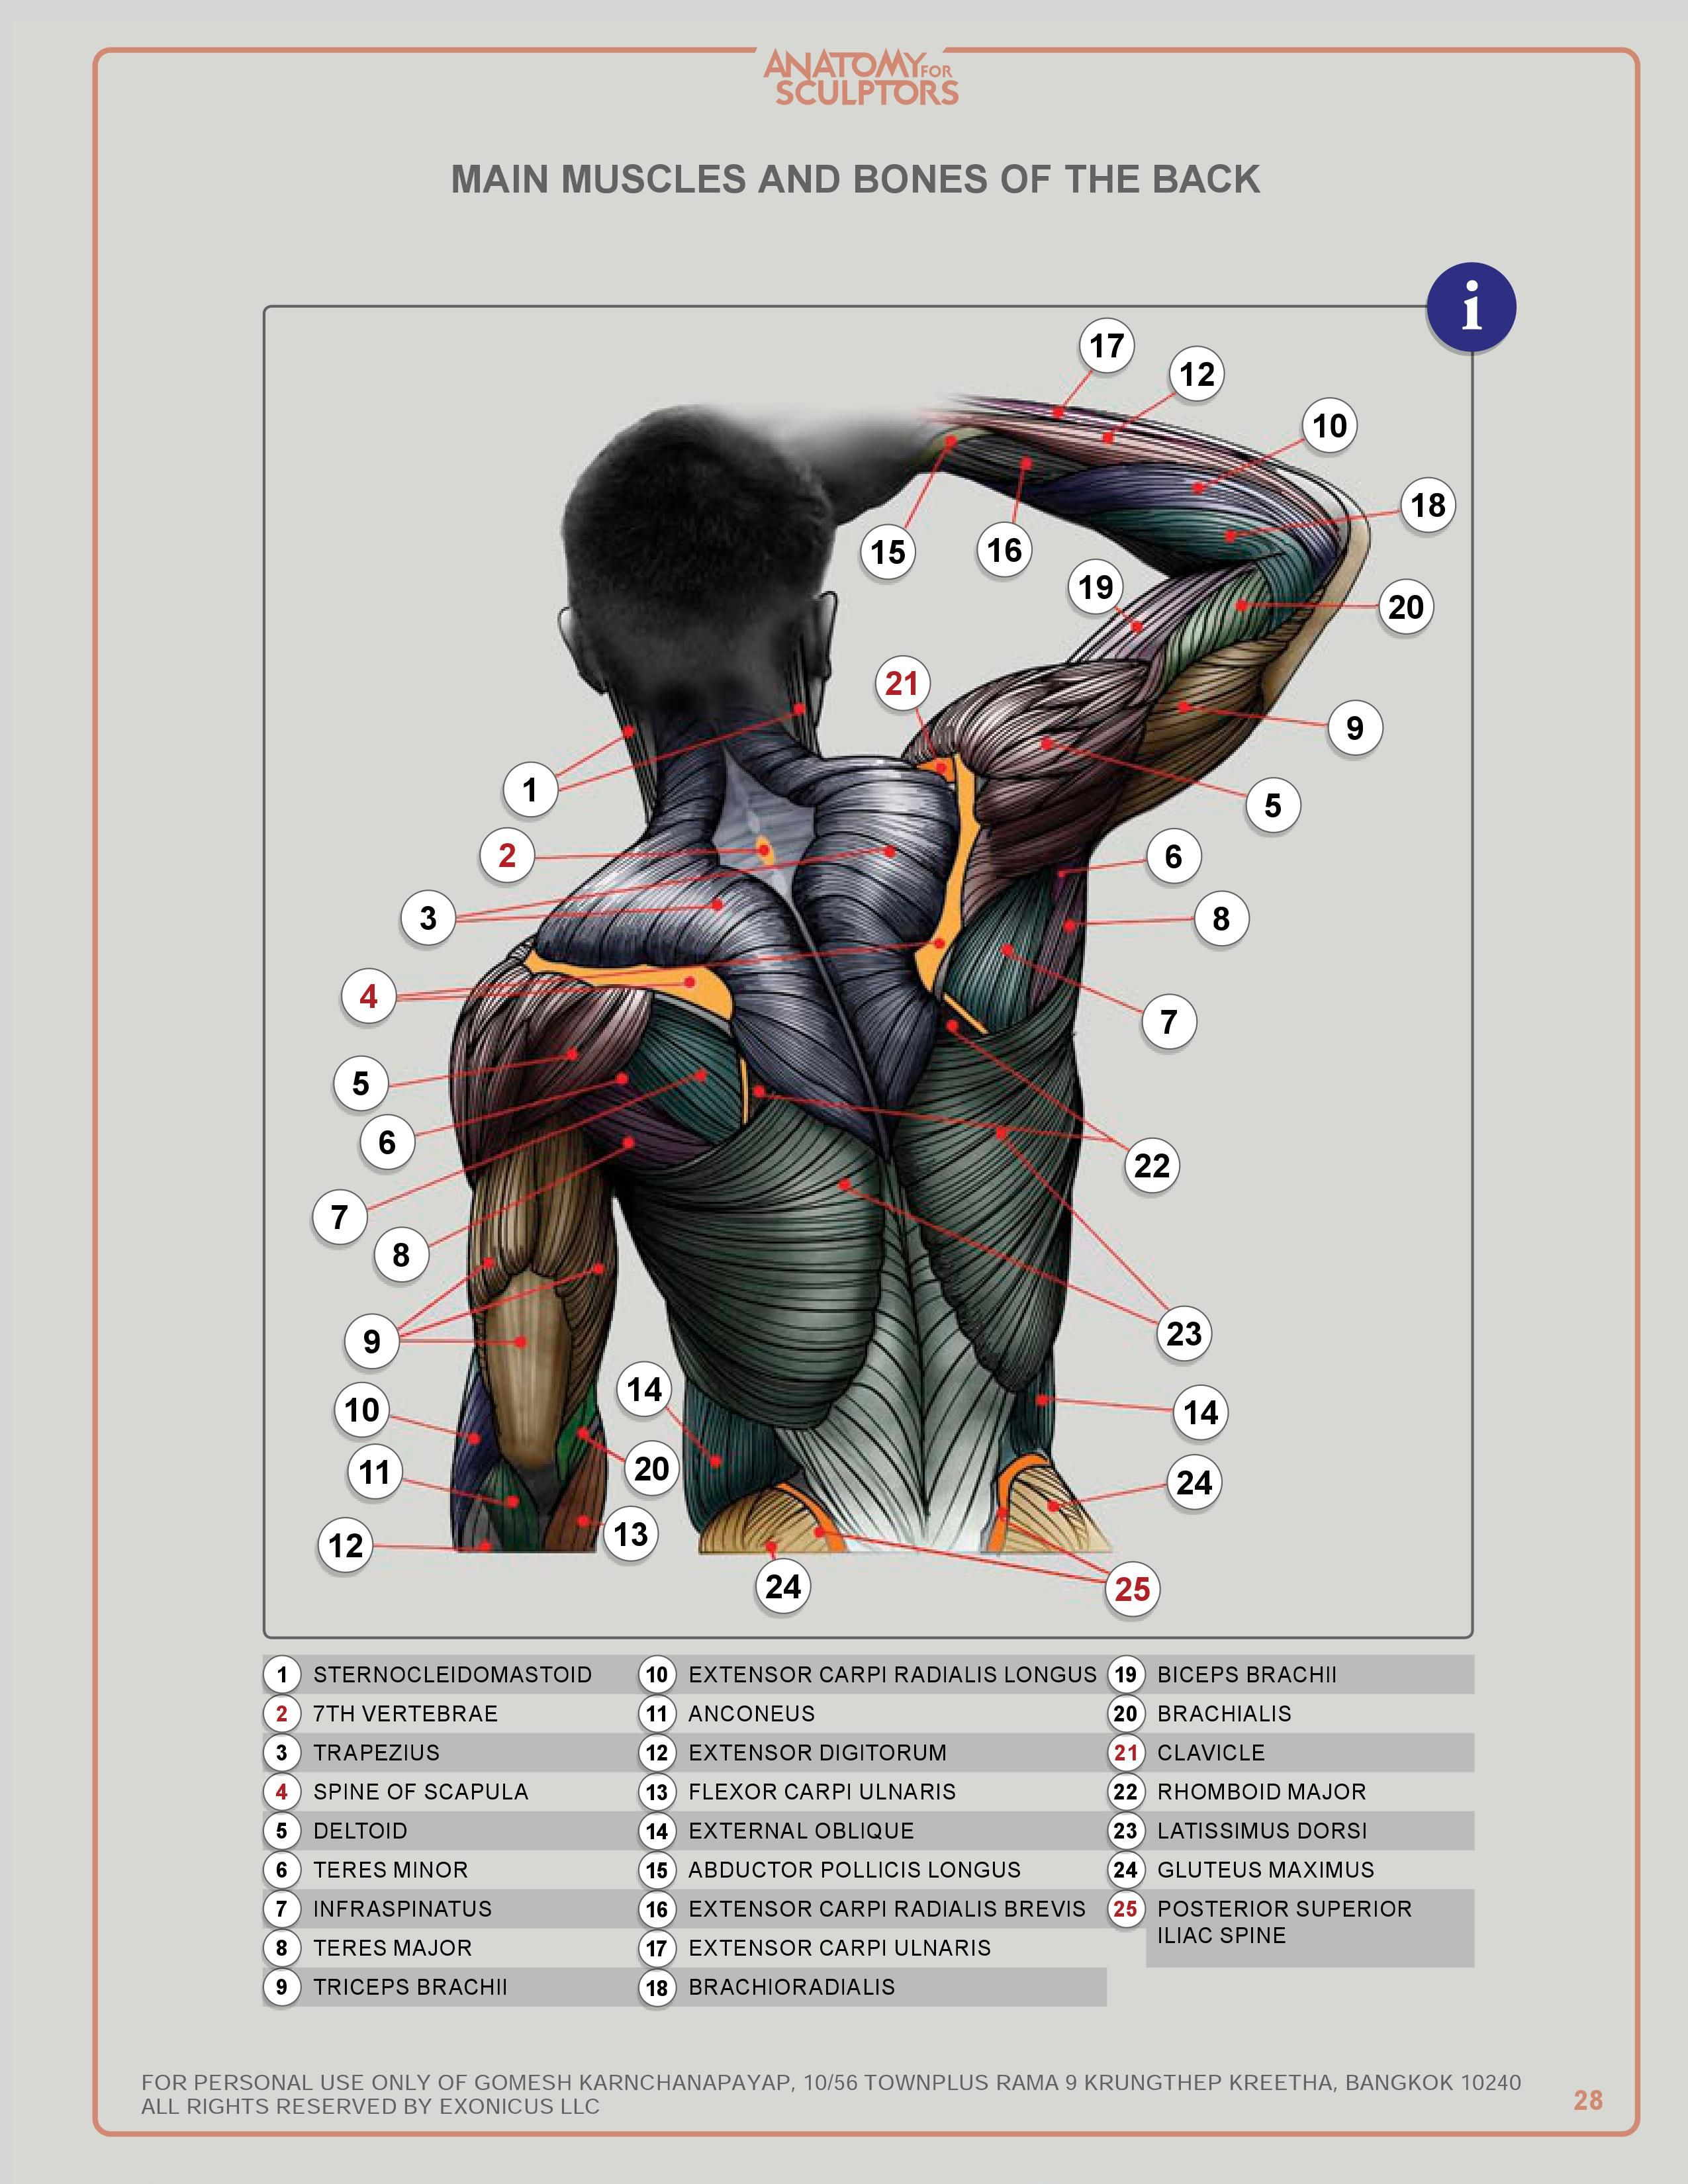 MAIN MUSCLES AND BONES OF THE BACK | Human anatomy | Pinterest